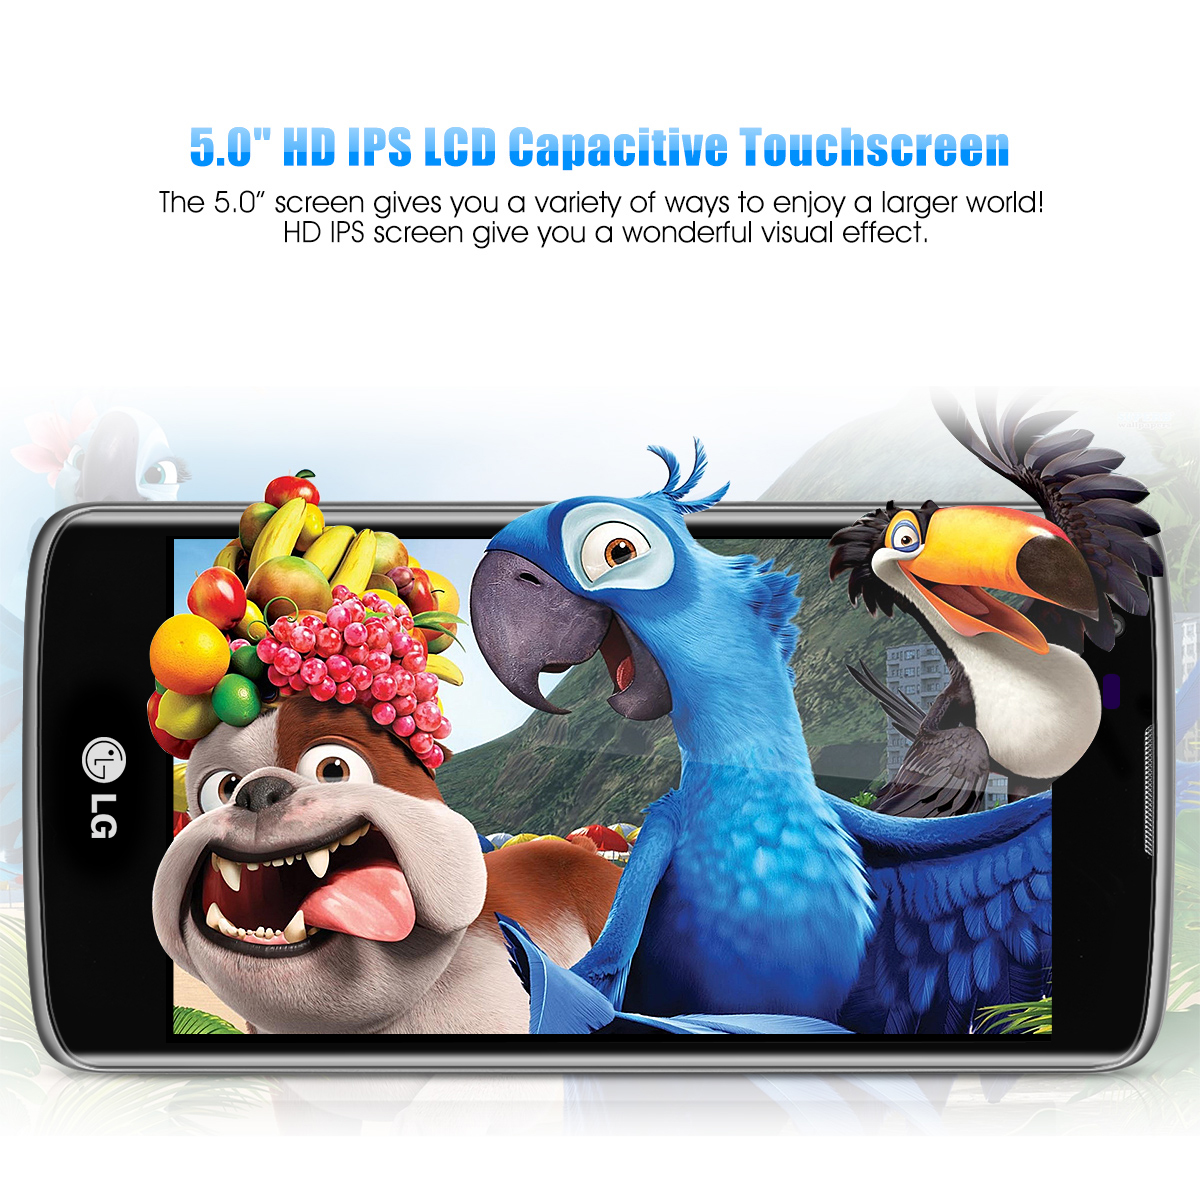 LG K8 4G 5.0 inch HD IPS LCD Capacitive Touchscreen Smartphone Android 6.0 Dual SIM Dual Standby Smart Phone 720 x 1280 Pixels